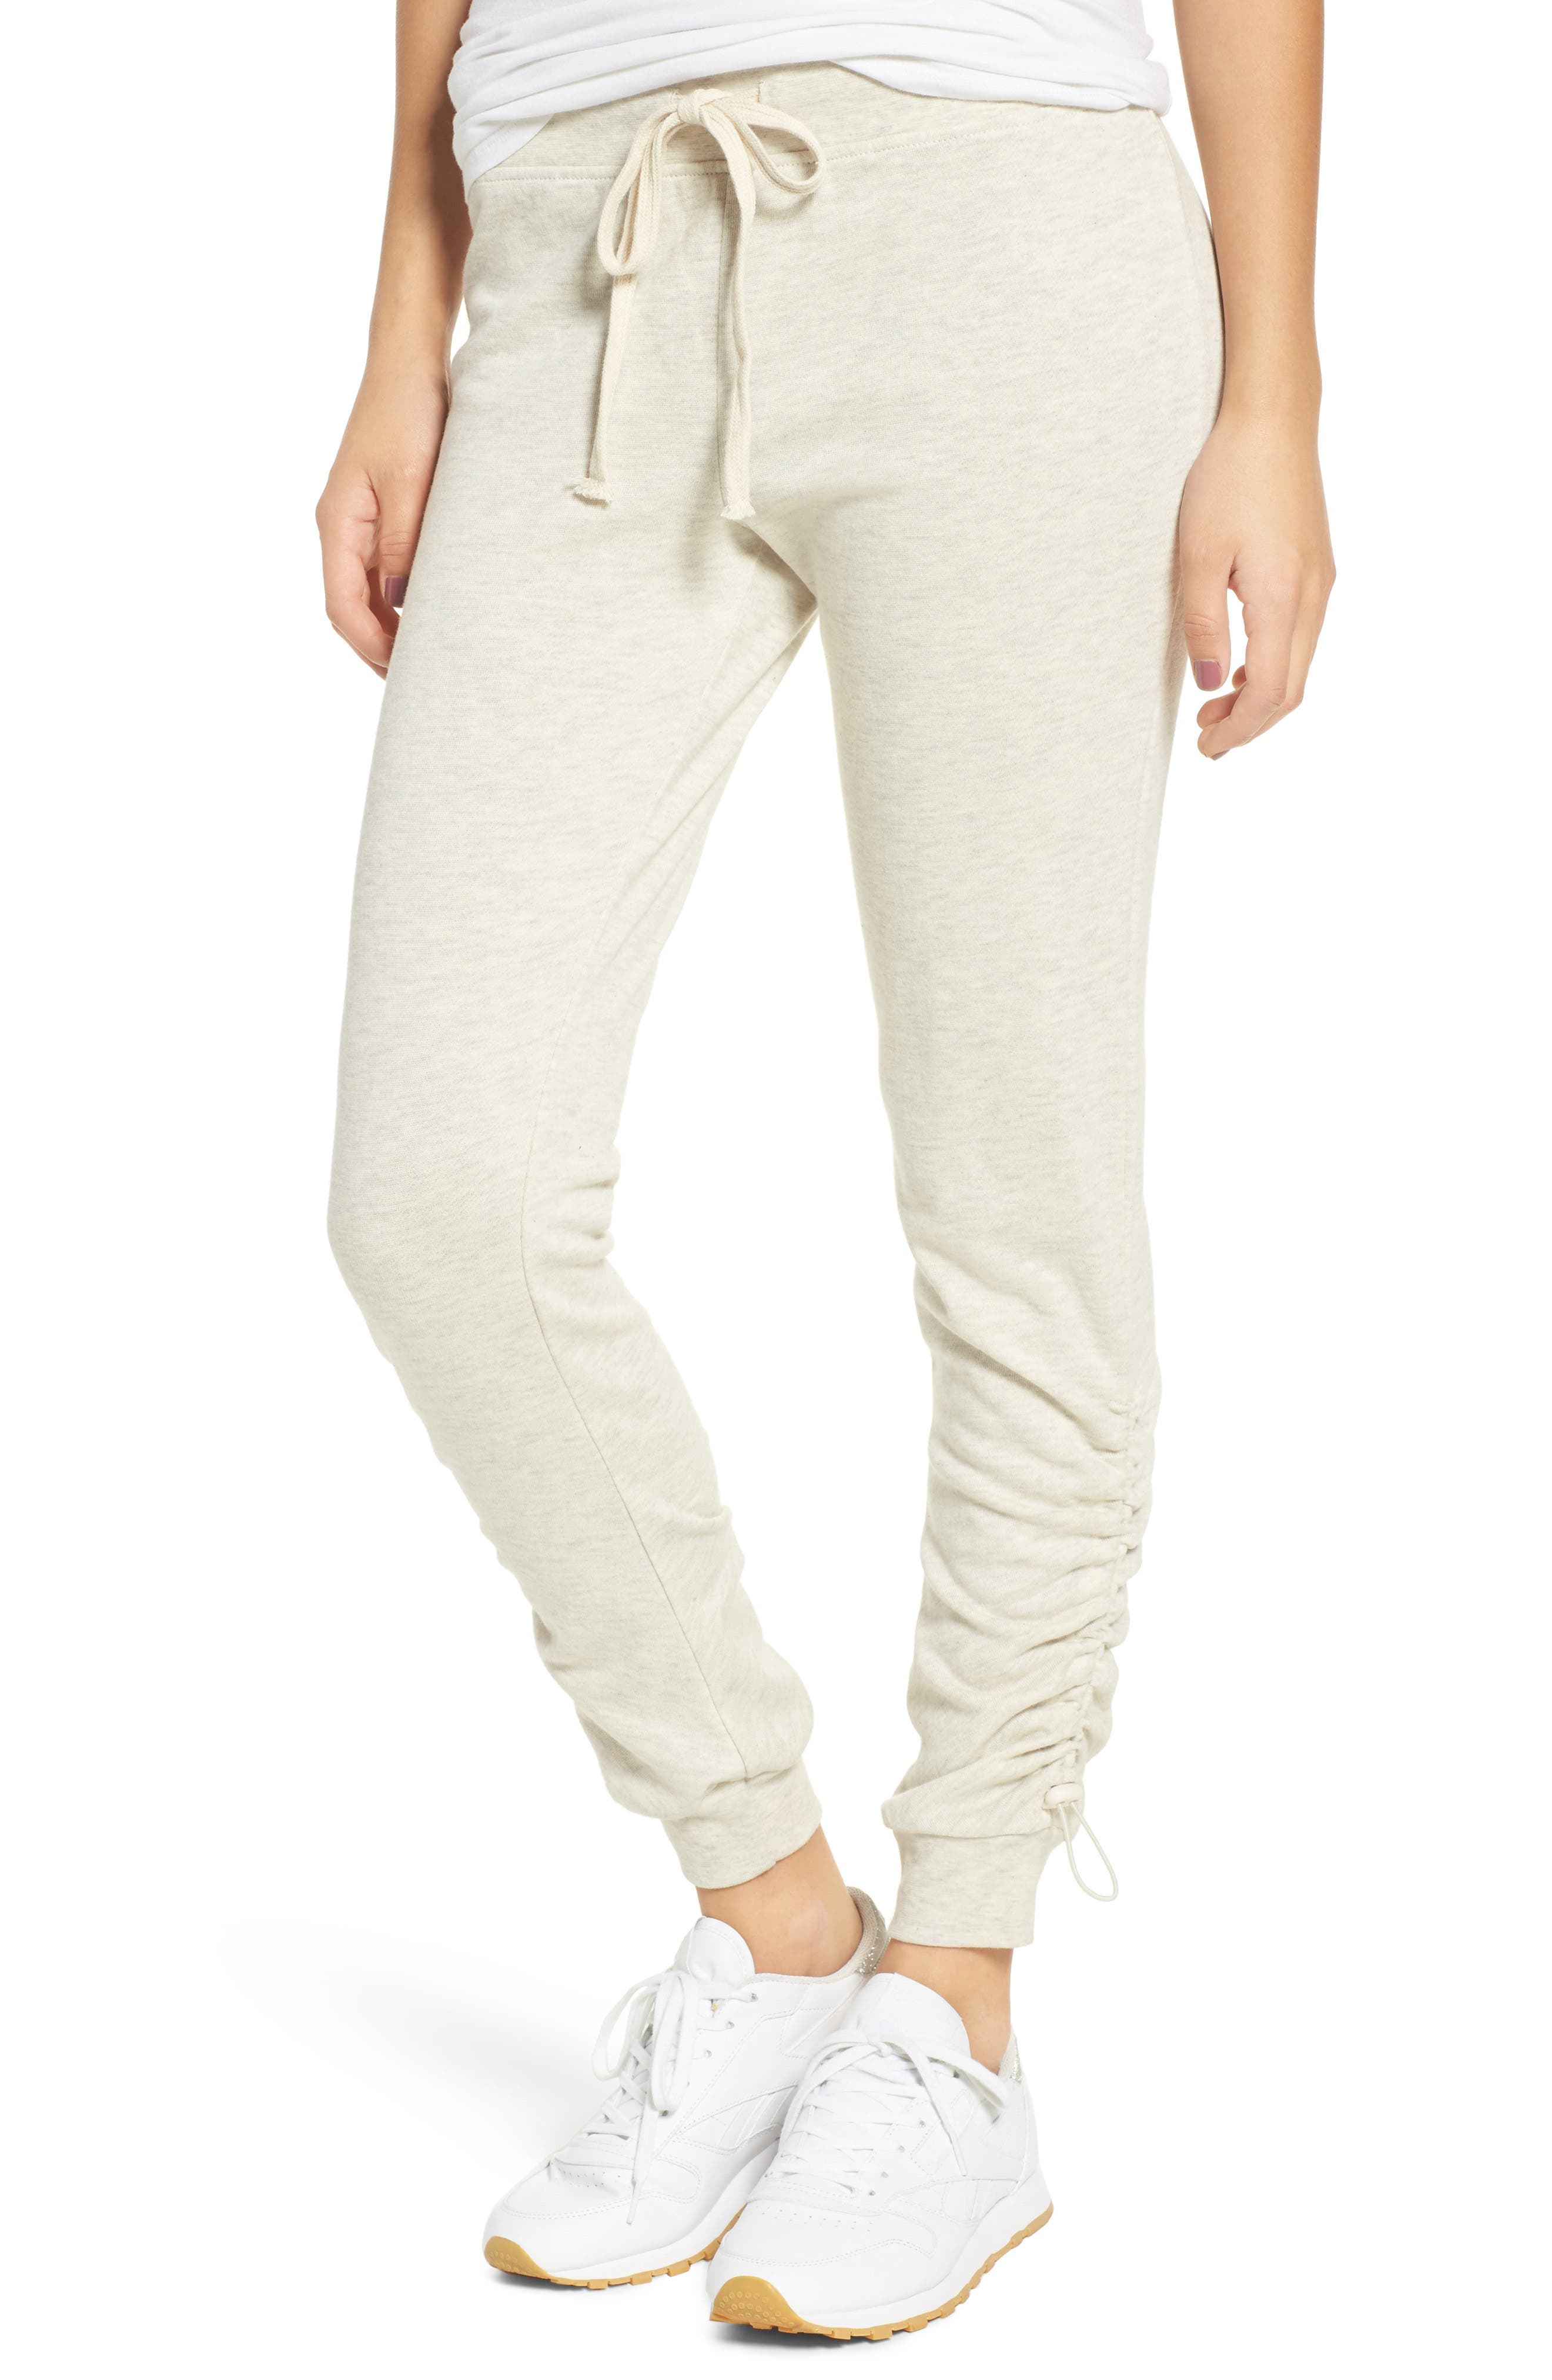 Alternate Image 1 Selected - Socialite Cinched Joggers